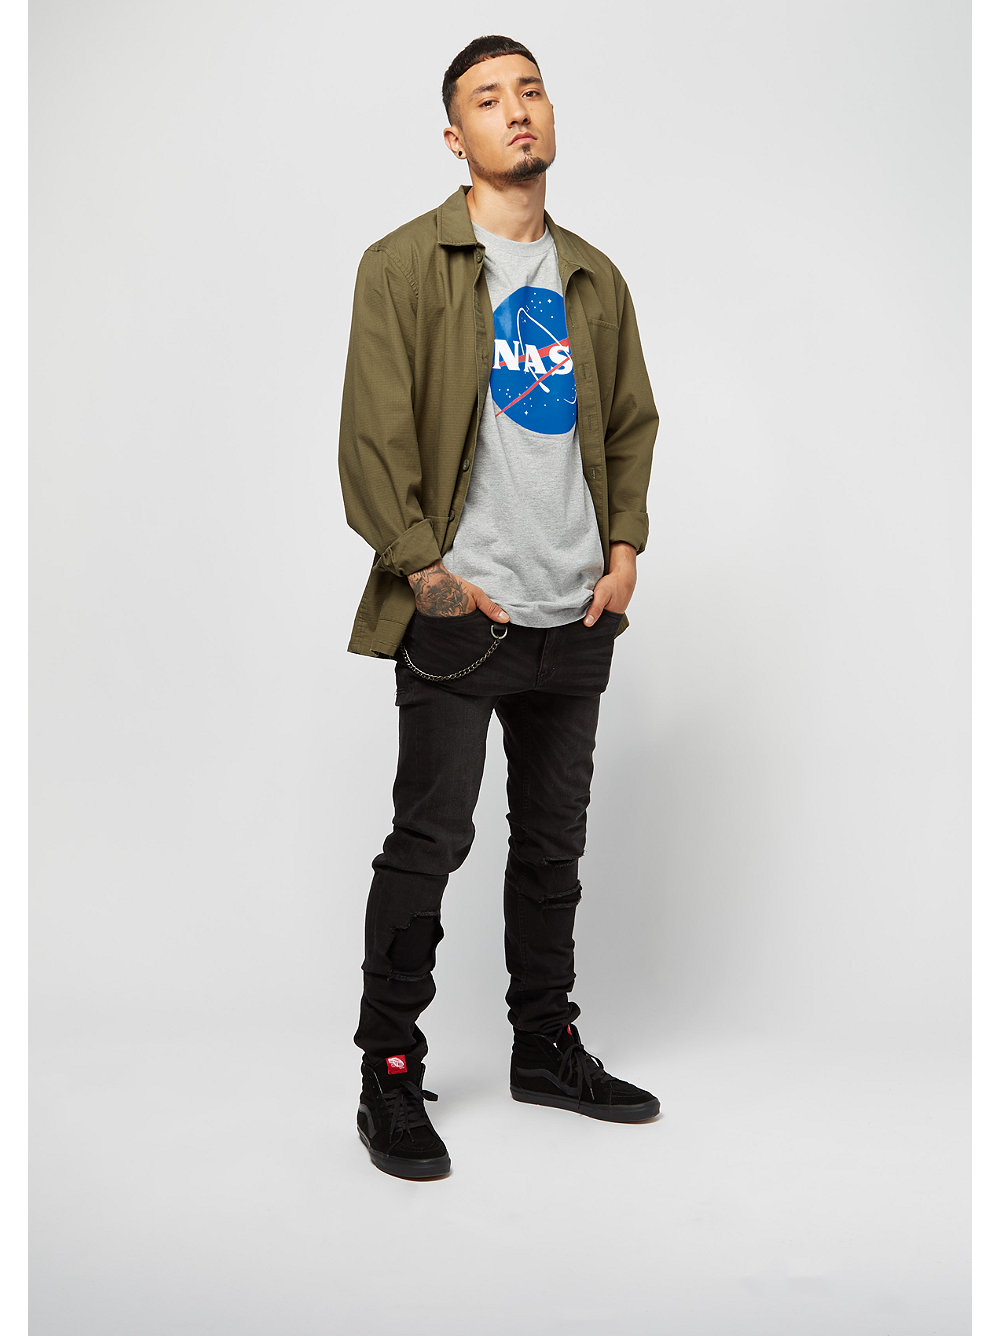 nasa heather t shirt von mister tee bei snipes kaufen. Black Bedroom Furniture Sets. Home Design Ideas